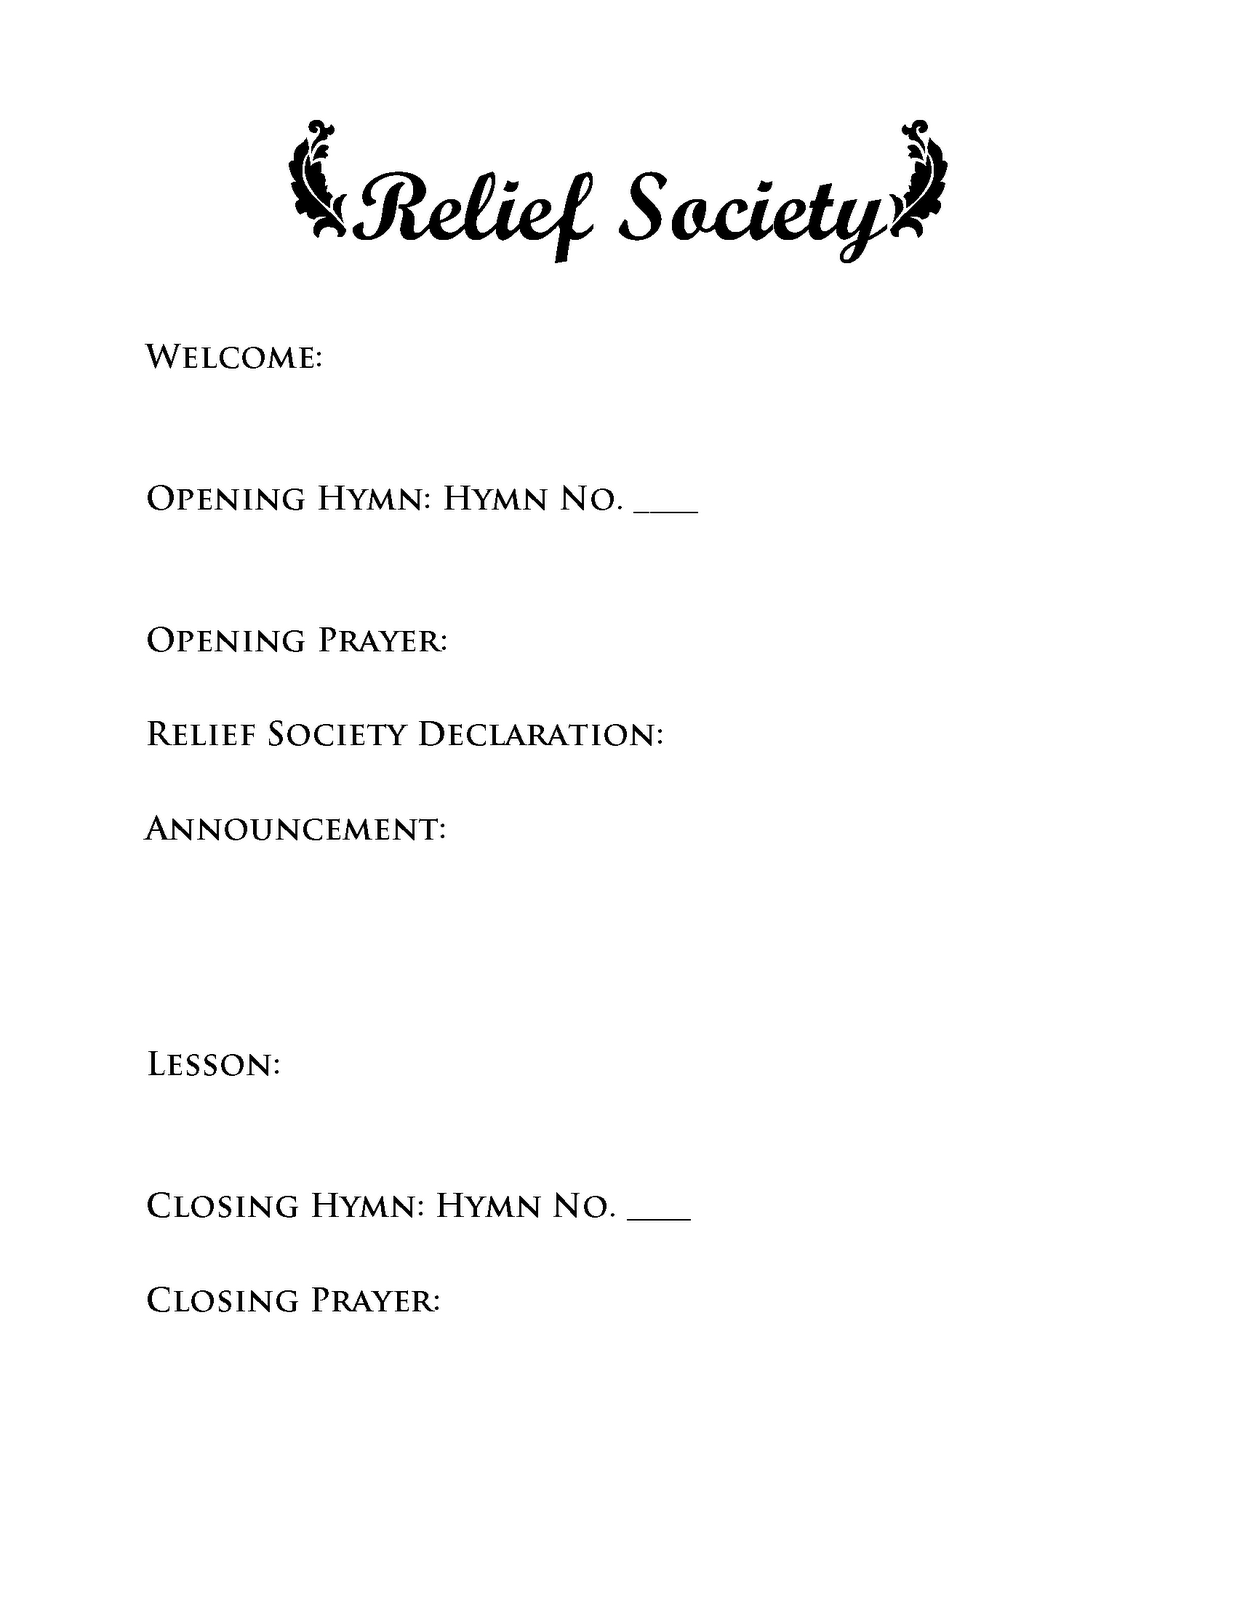 photo regarding Relief Society Declaration Printable referred to as Aid Culture - Opening Fitness Computer software